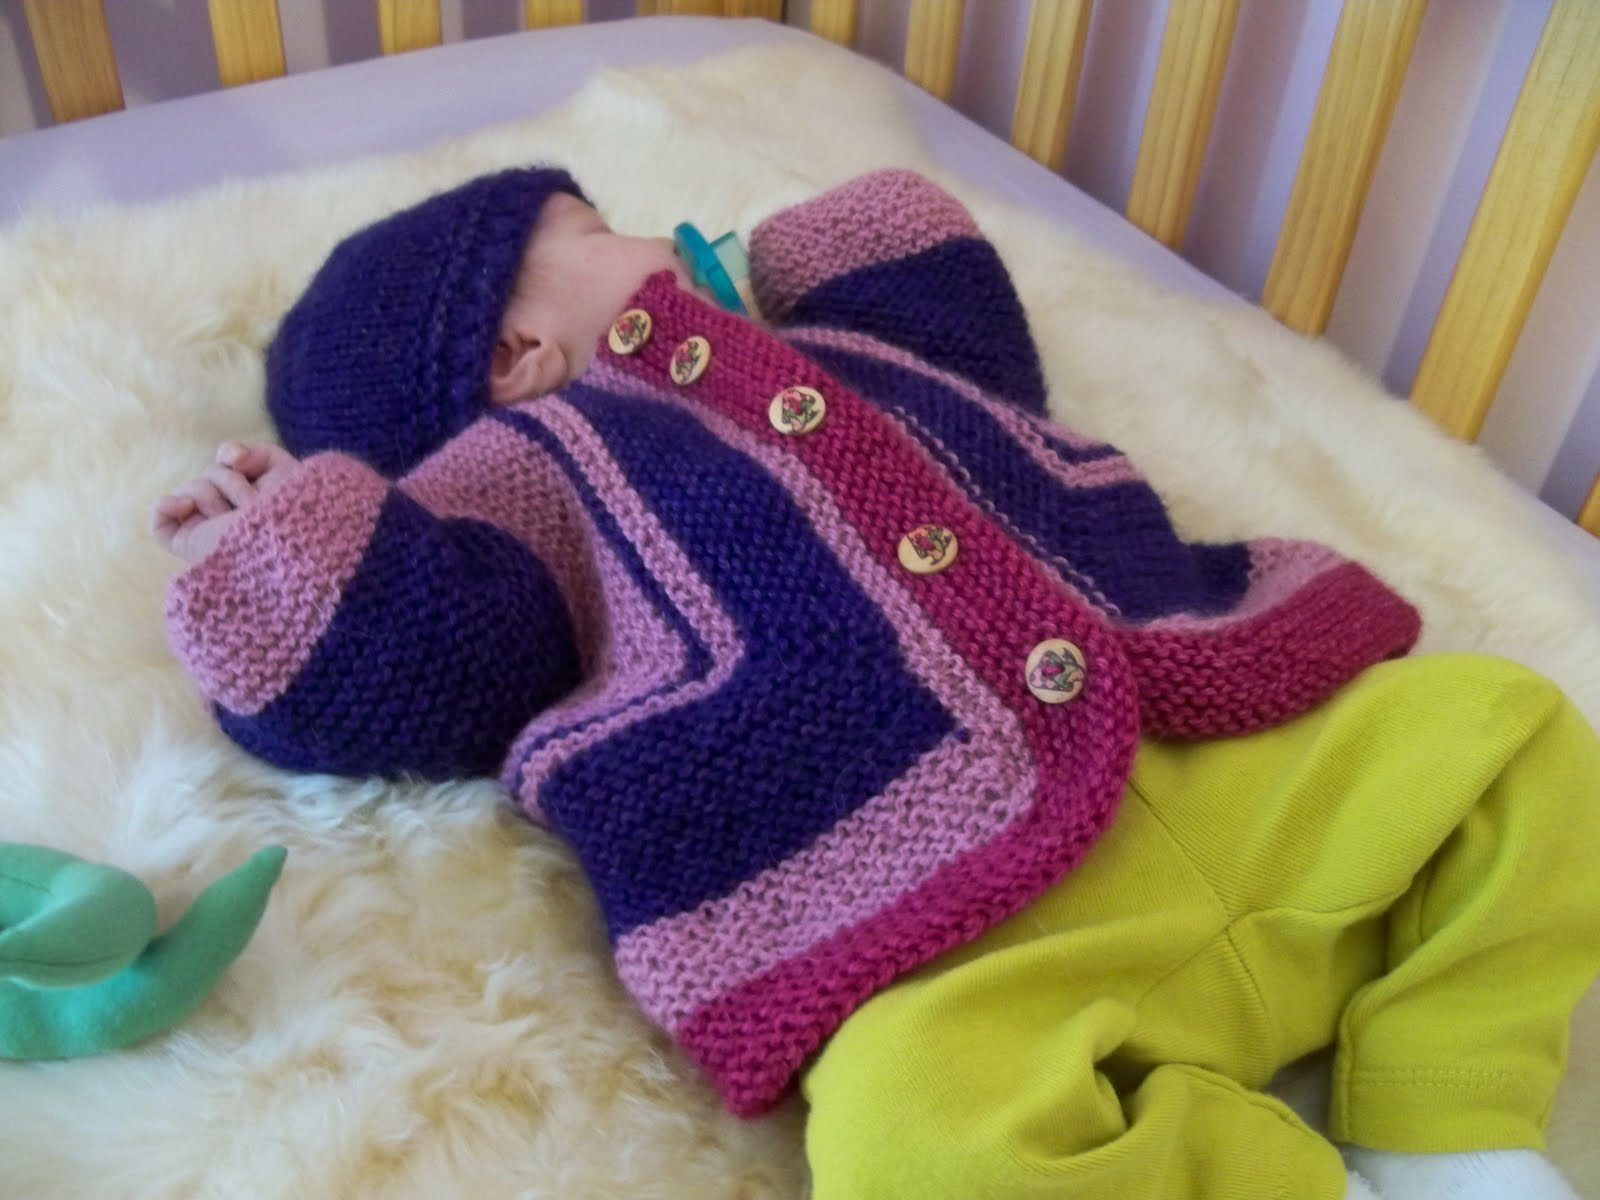 Crochet Surprise Jacket Free Pattern : Baby Surprise Jacket Free Pattern ? Catalog of Patterns